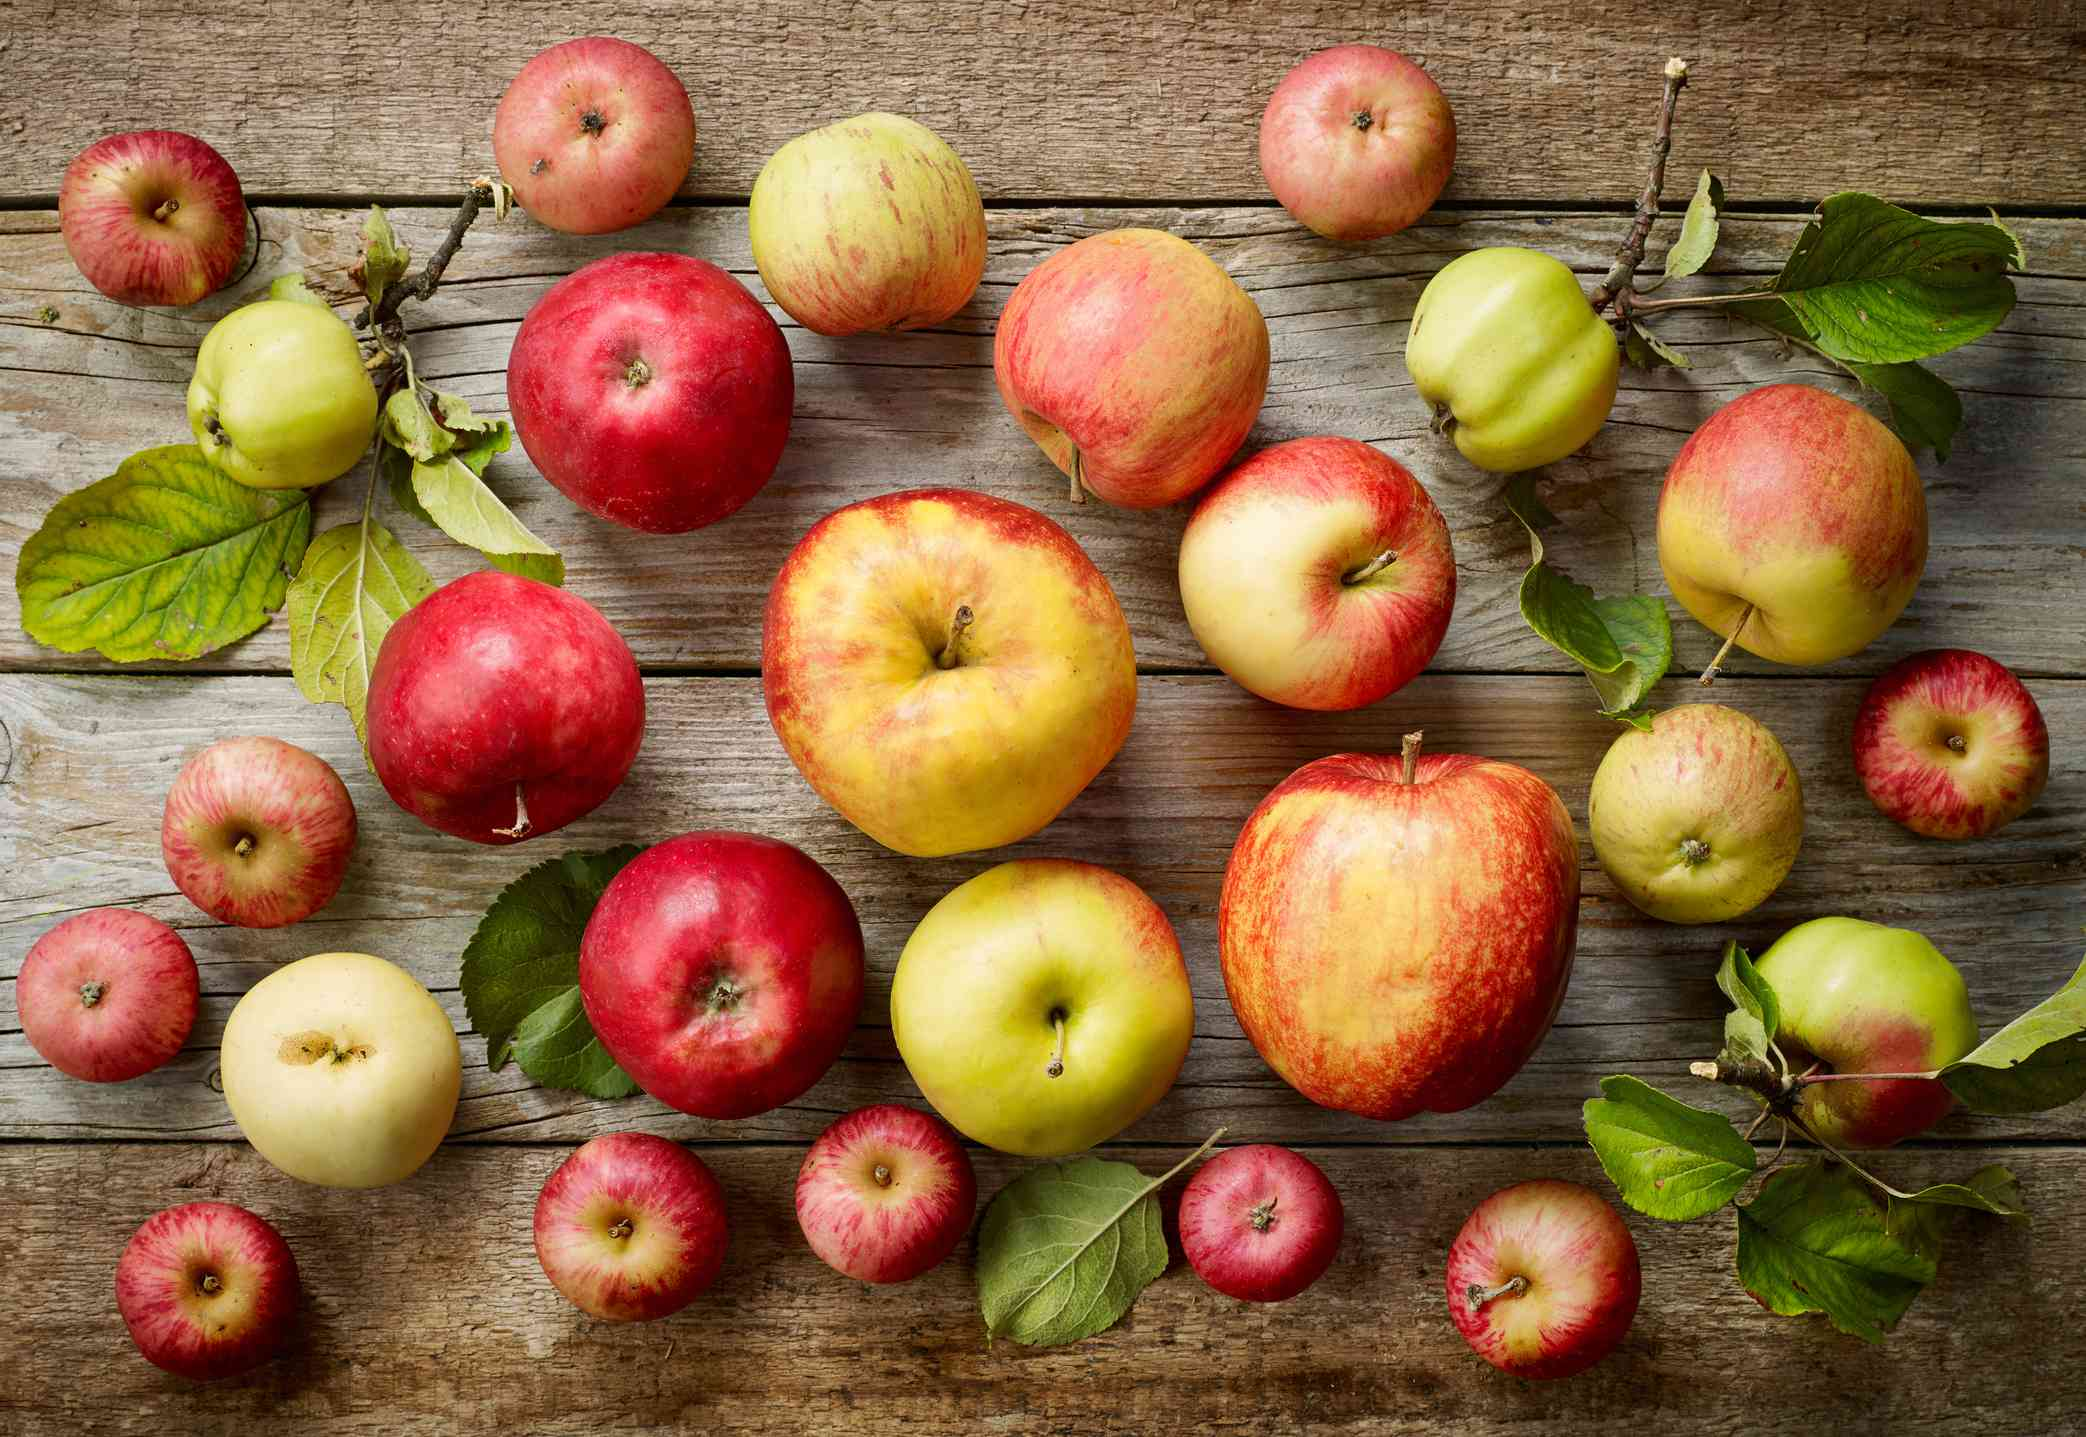 A variety of freshly picked apples with stems and leaves on a wooden board